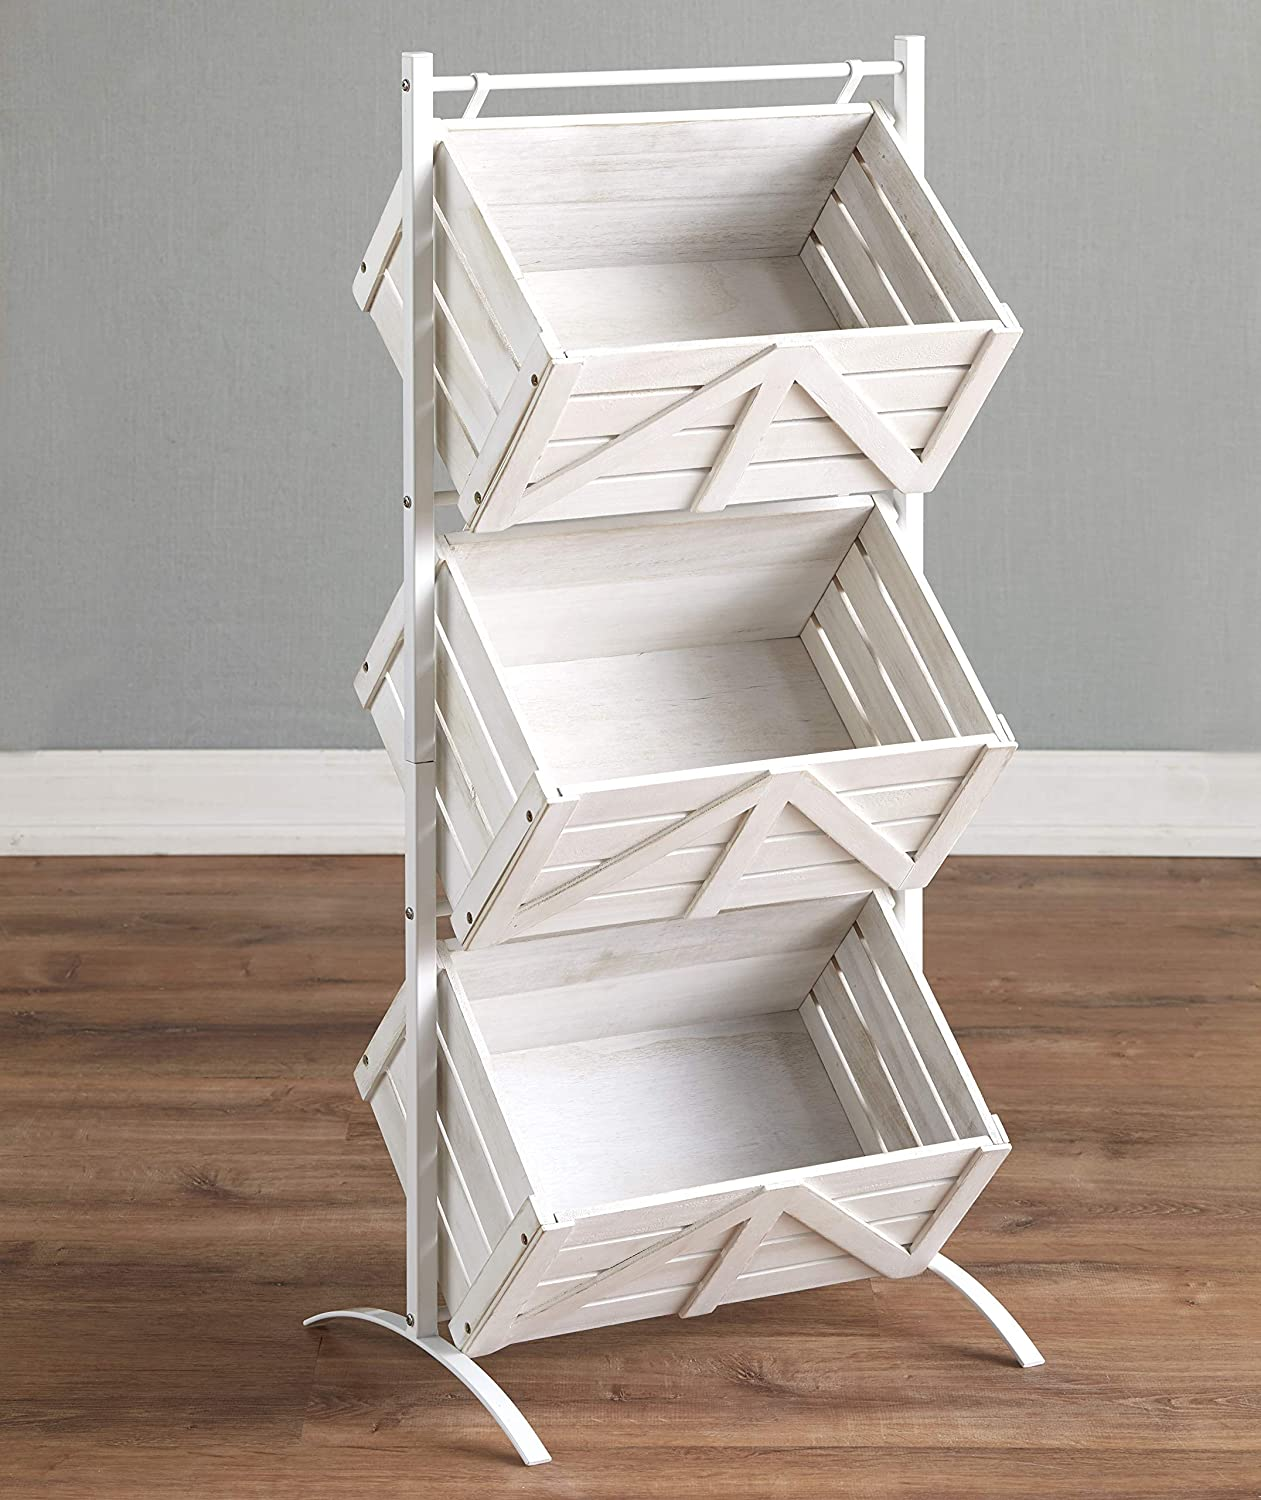 The Lakeside Selling Collection Triple Basket Storage New sales Shelvi Rack Rustic